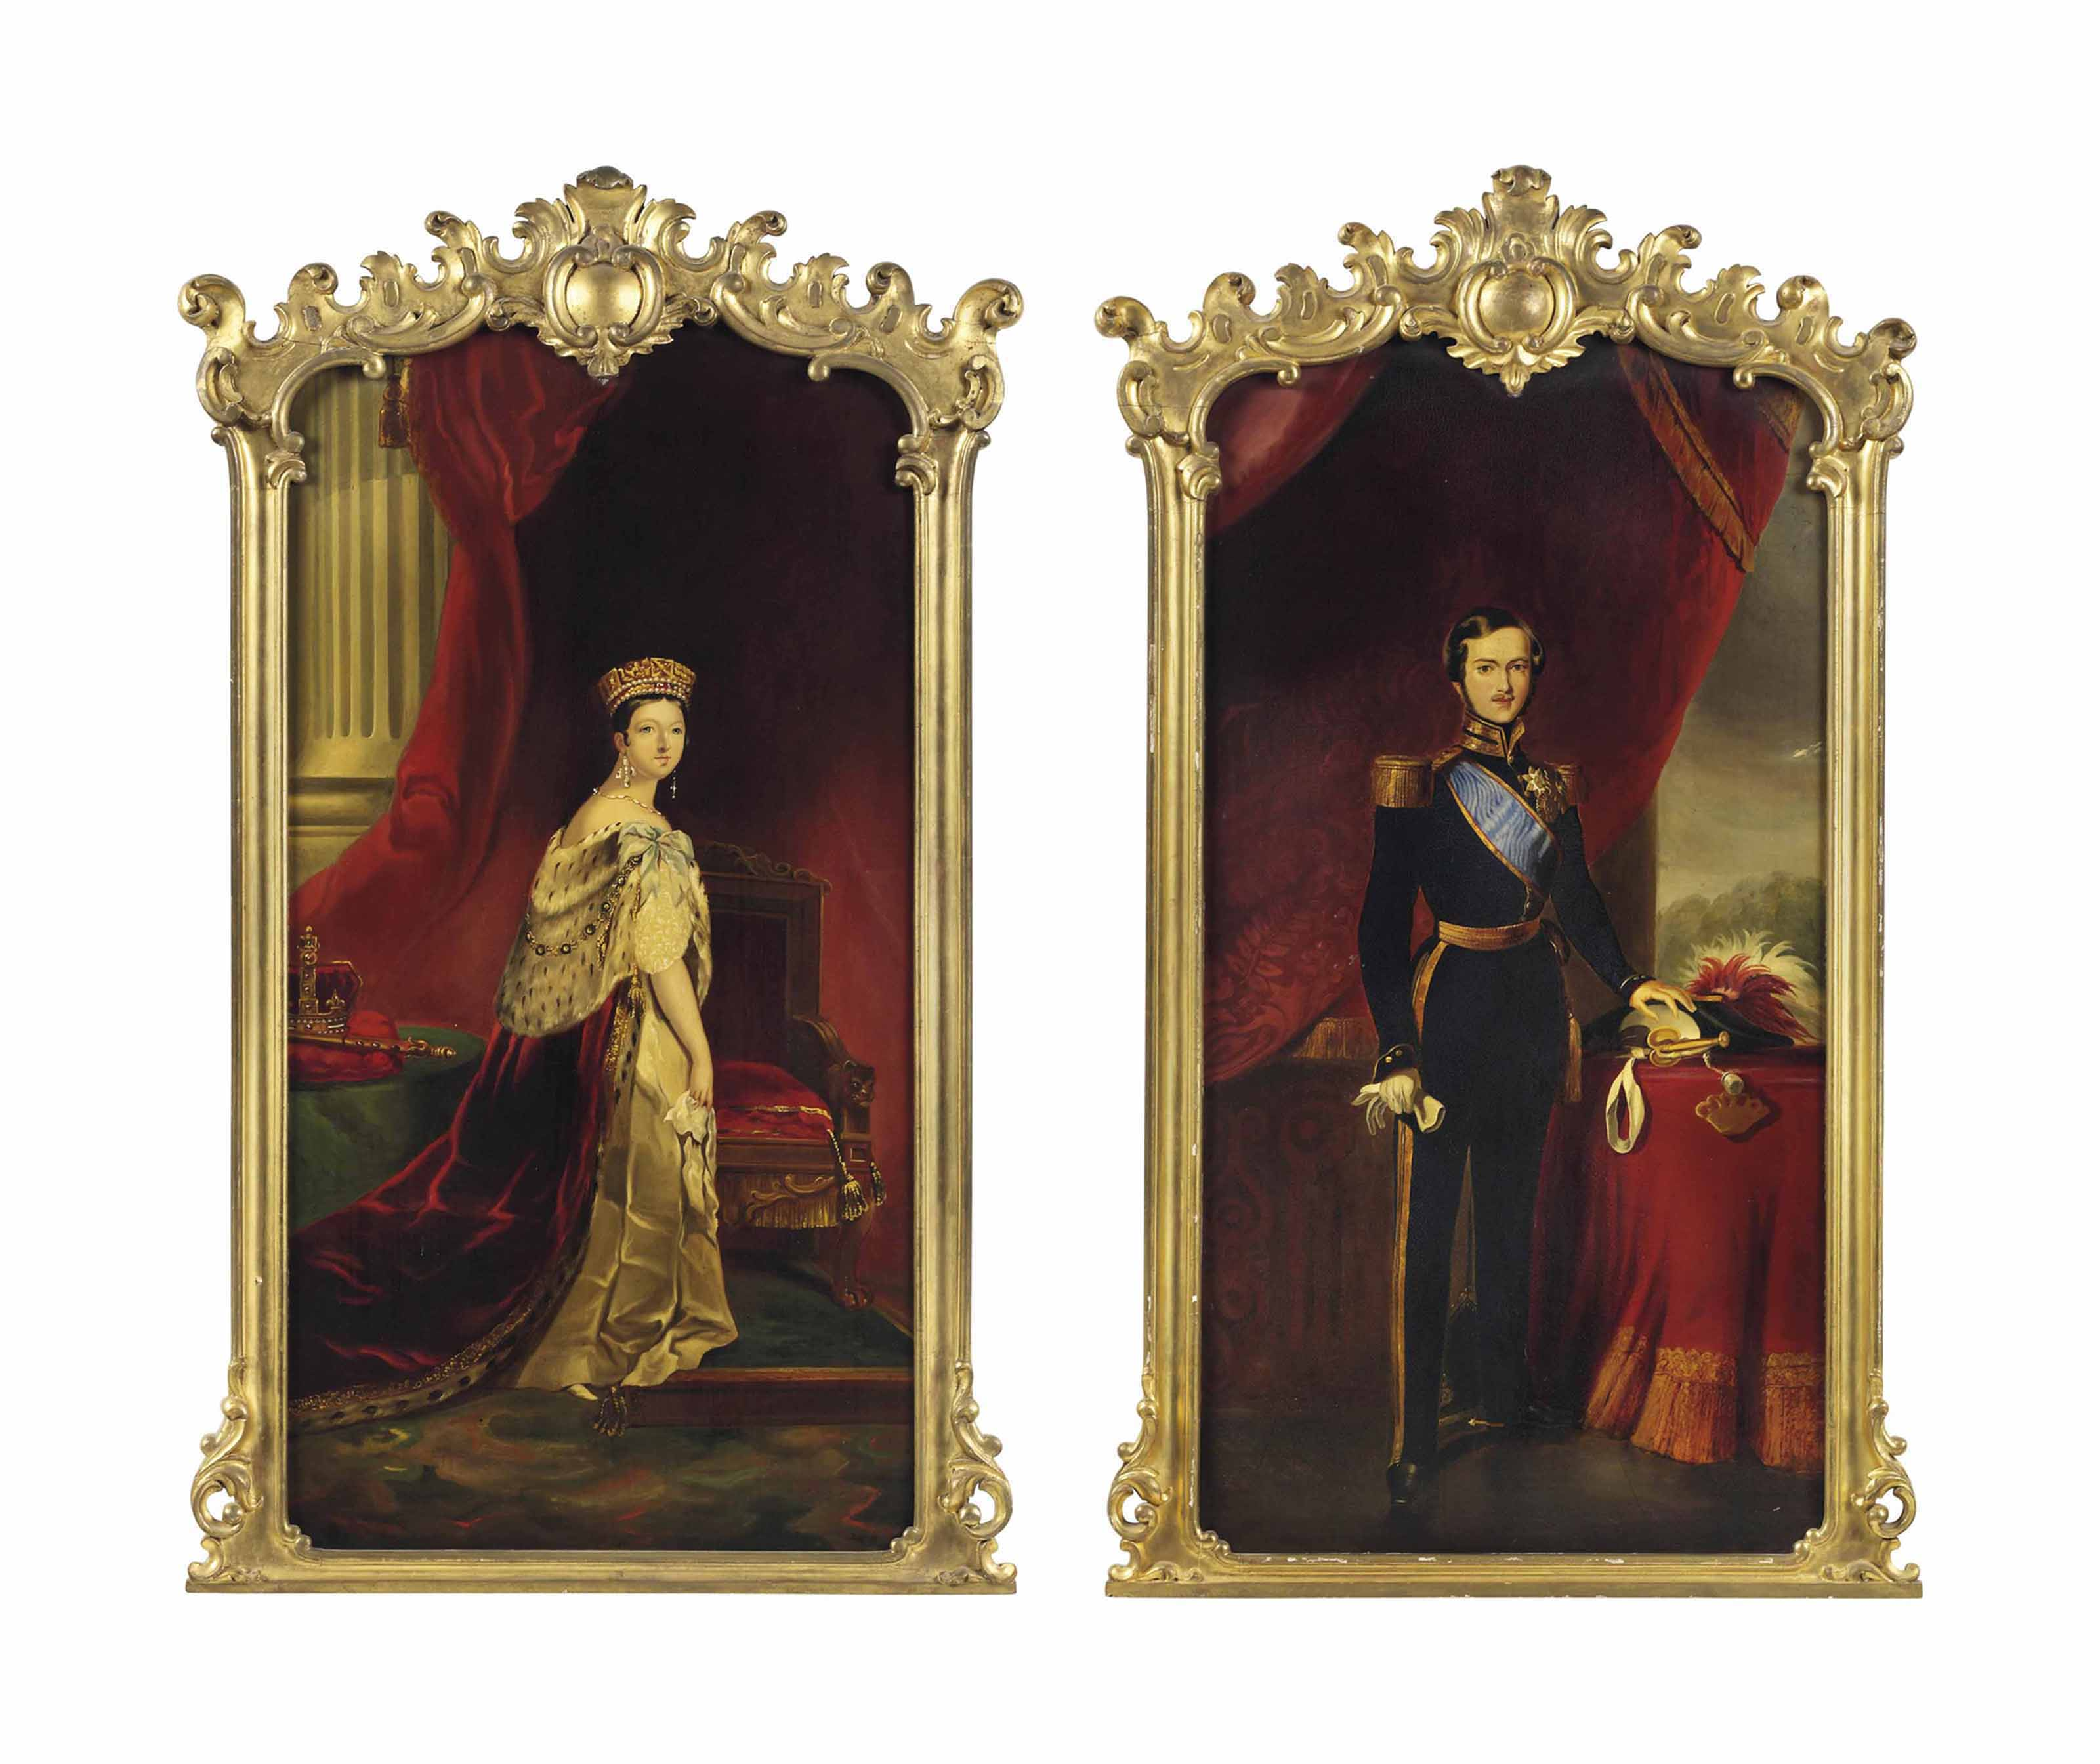 A PAIR OF PAPIER MACHE PANELS PAINTED WITH PORTRAITS OF QUEEN VICTORIA AND PRINCE ALBERT